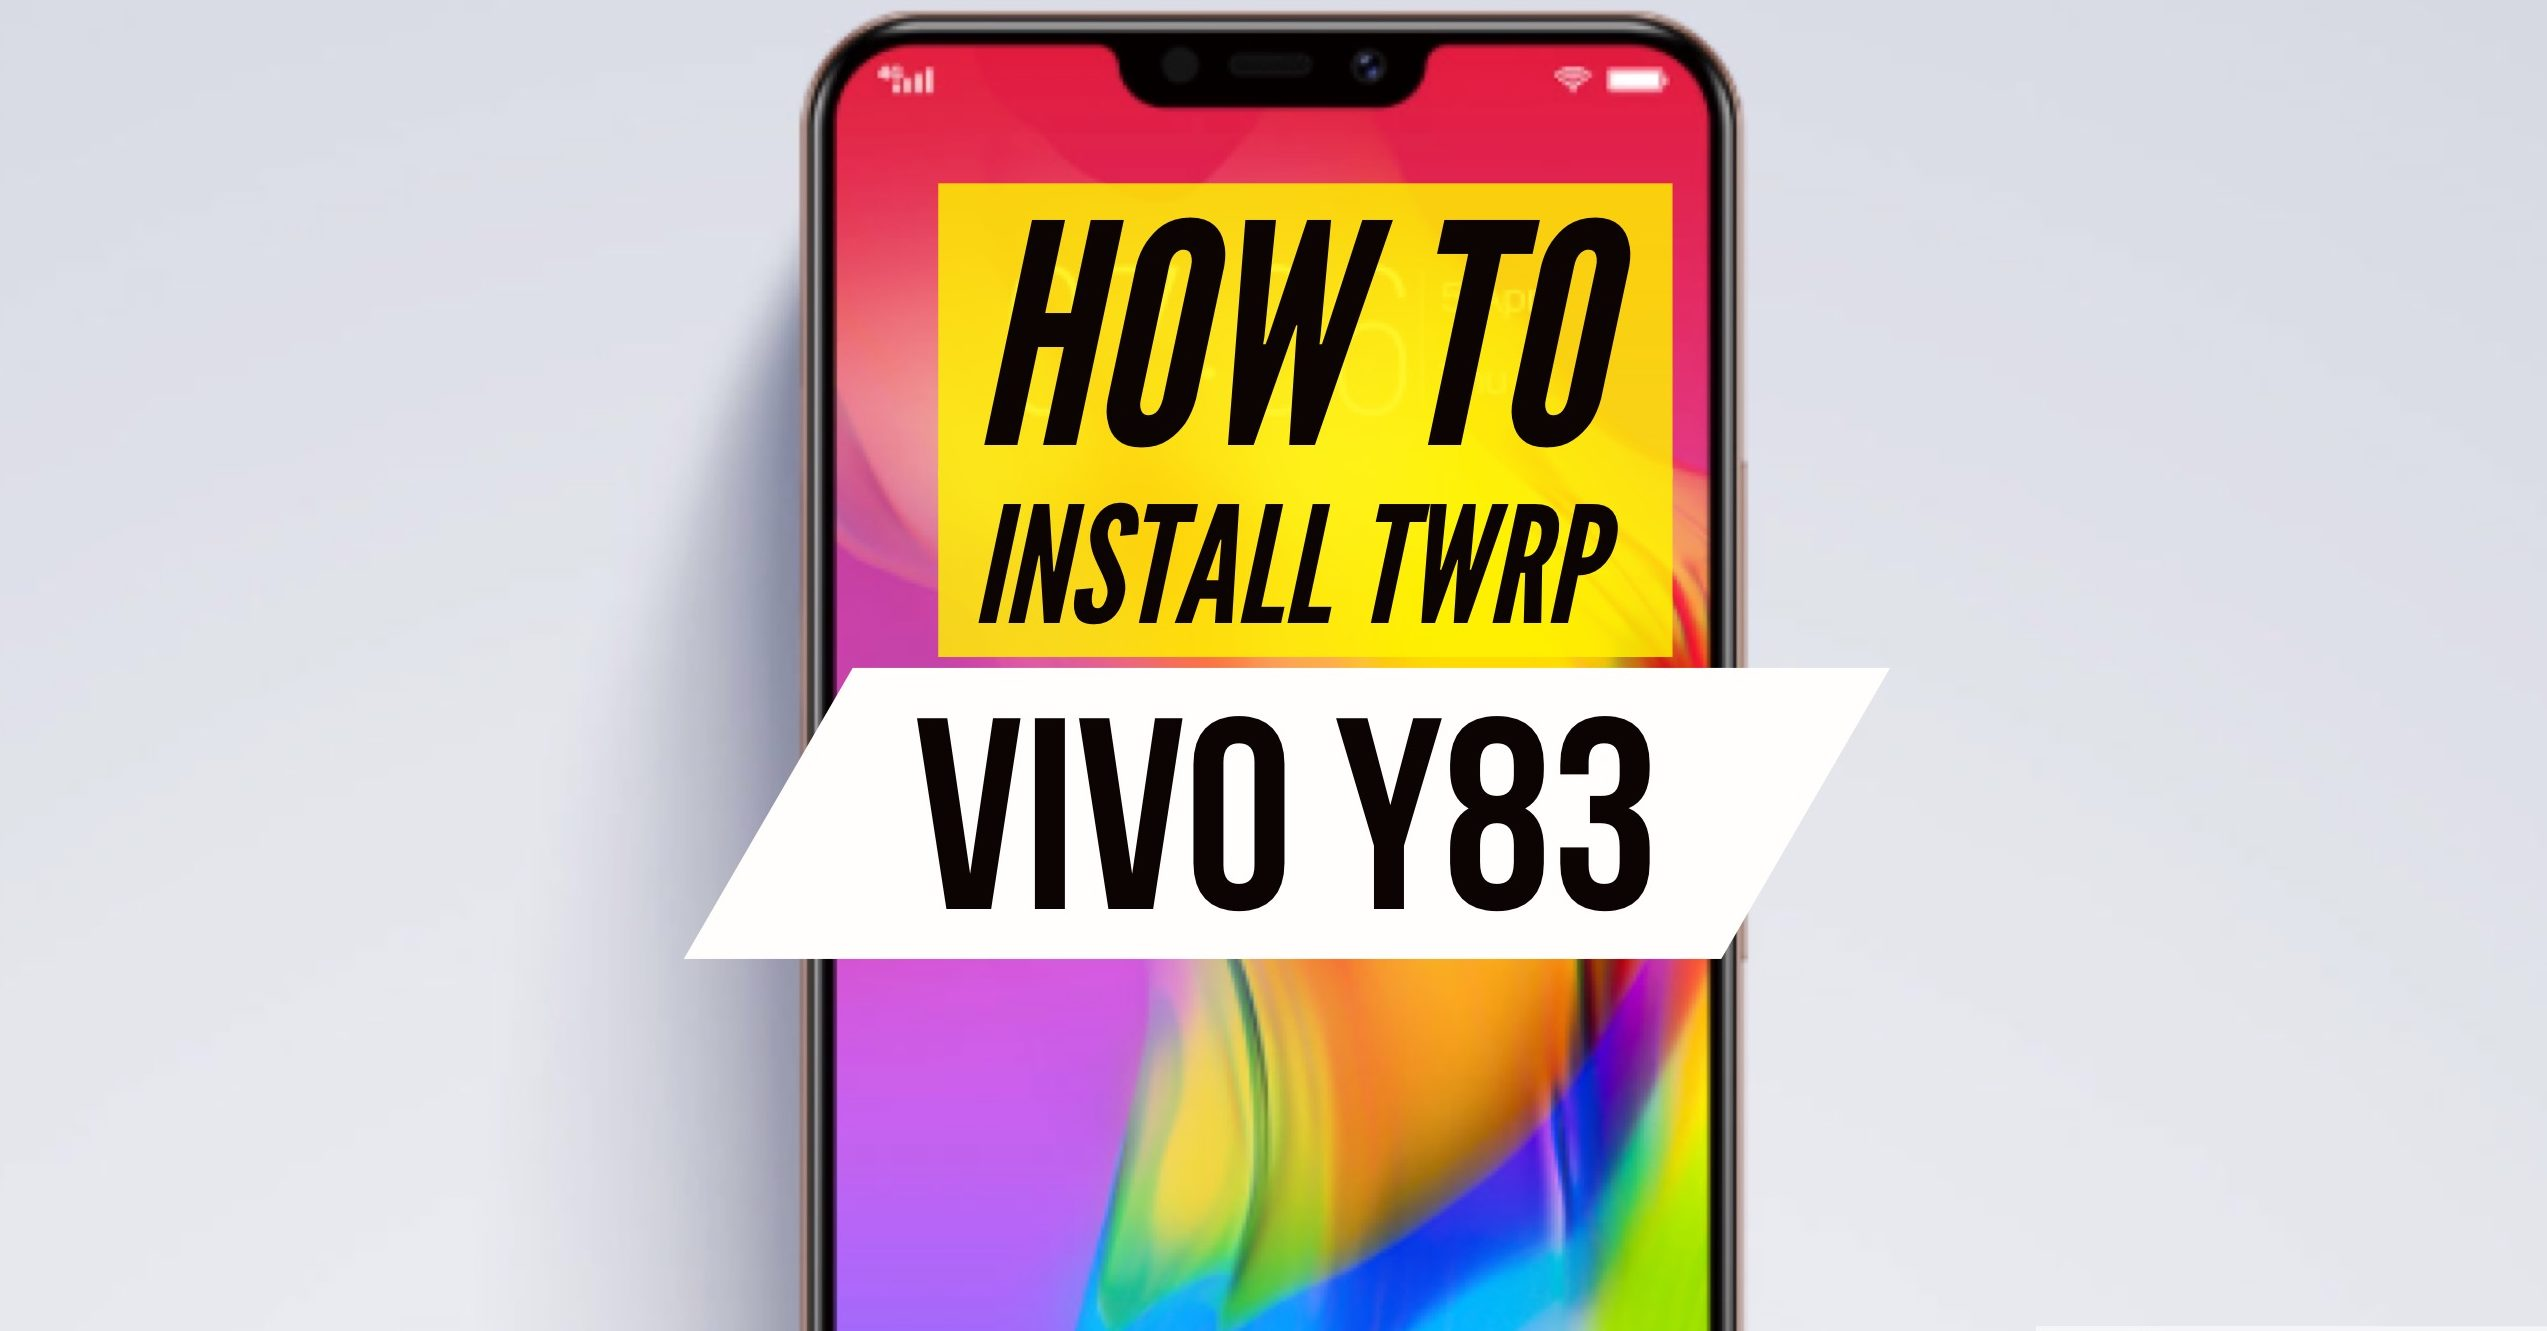 VIVO Y83 TWRP Recovery Installation - Two Easy METHODS!